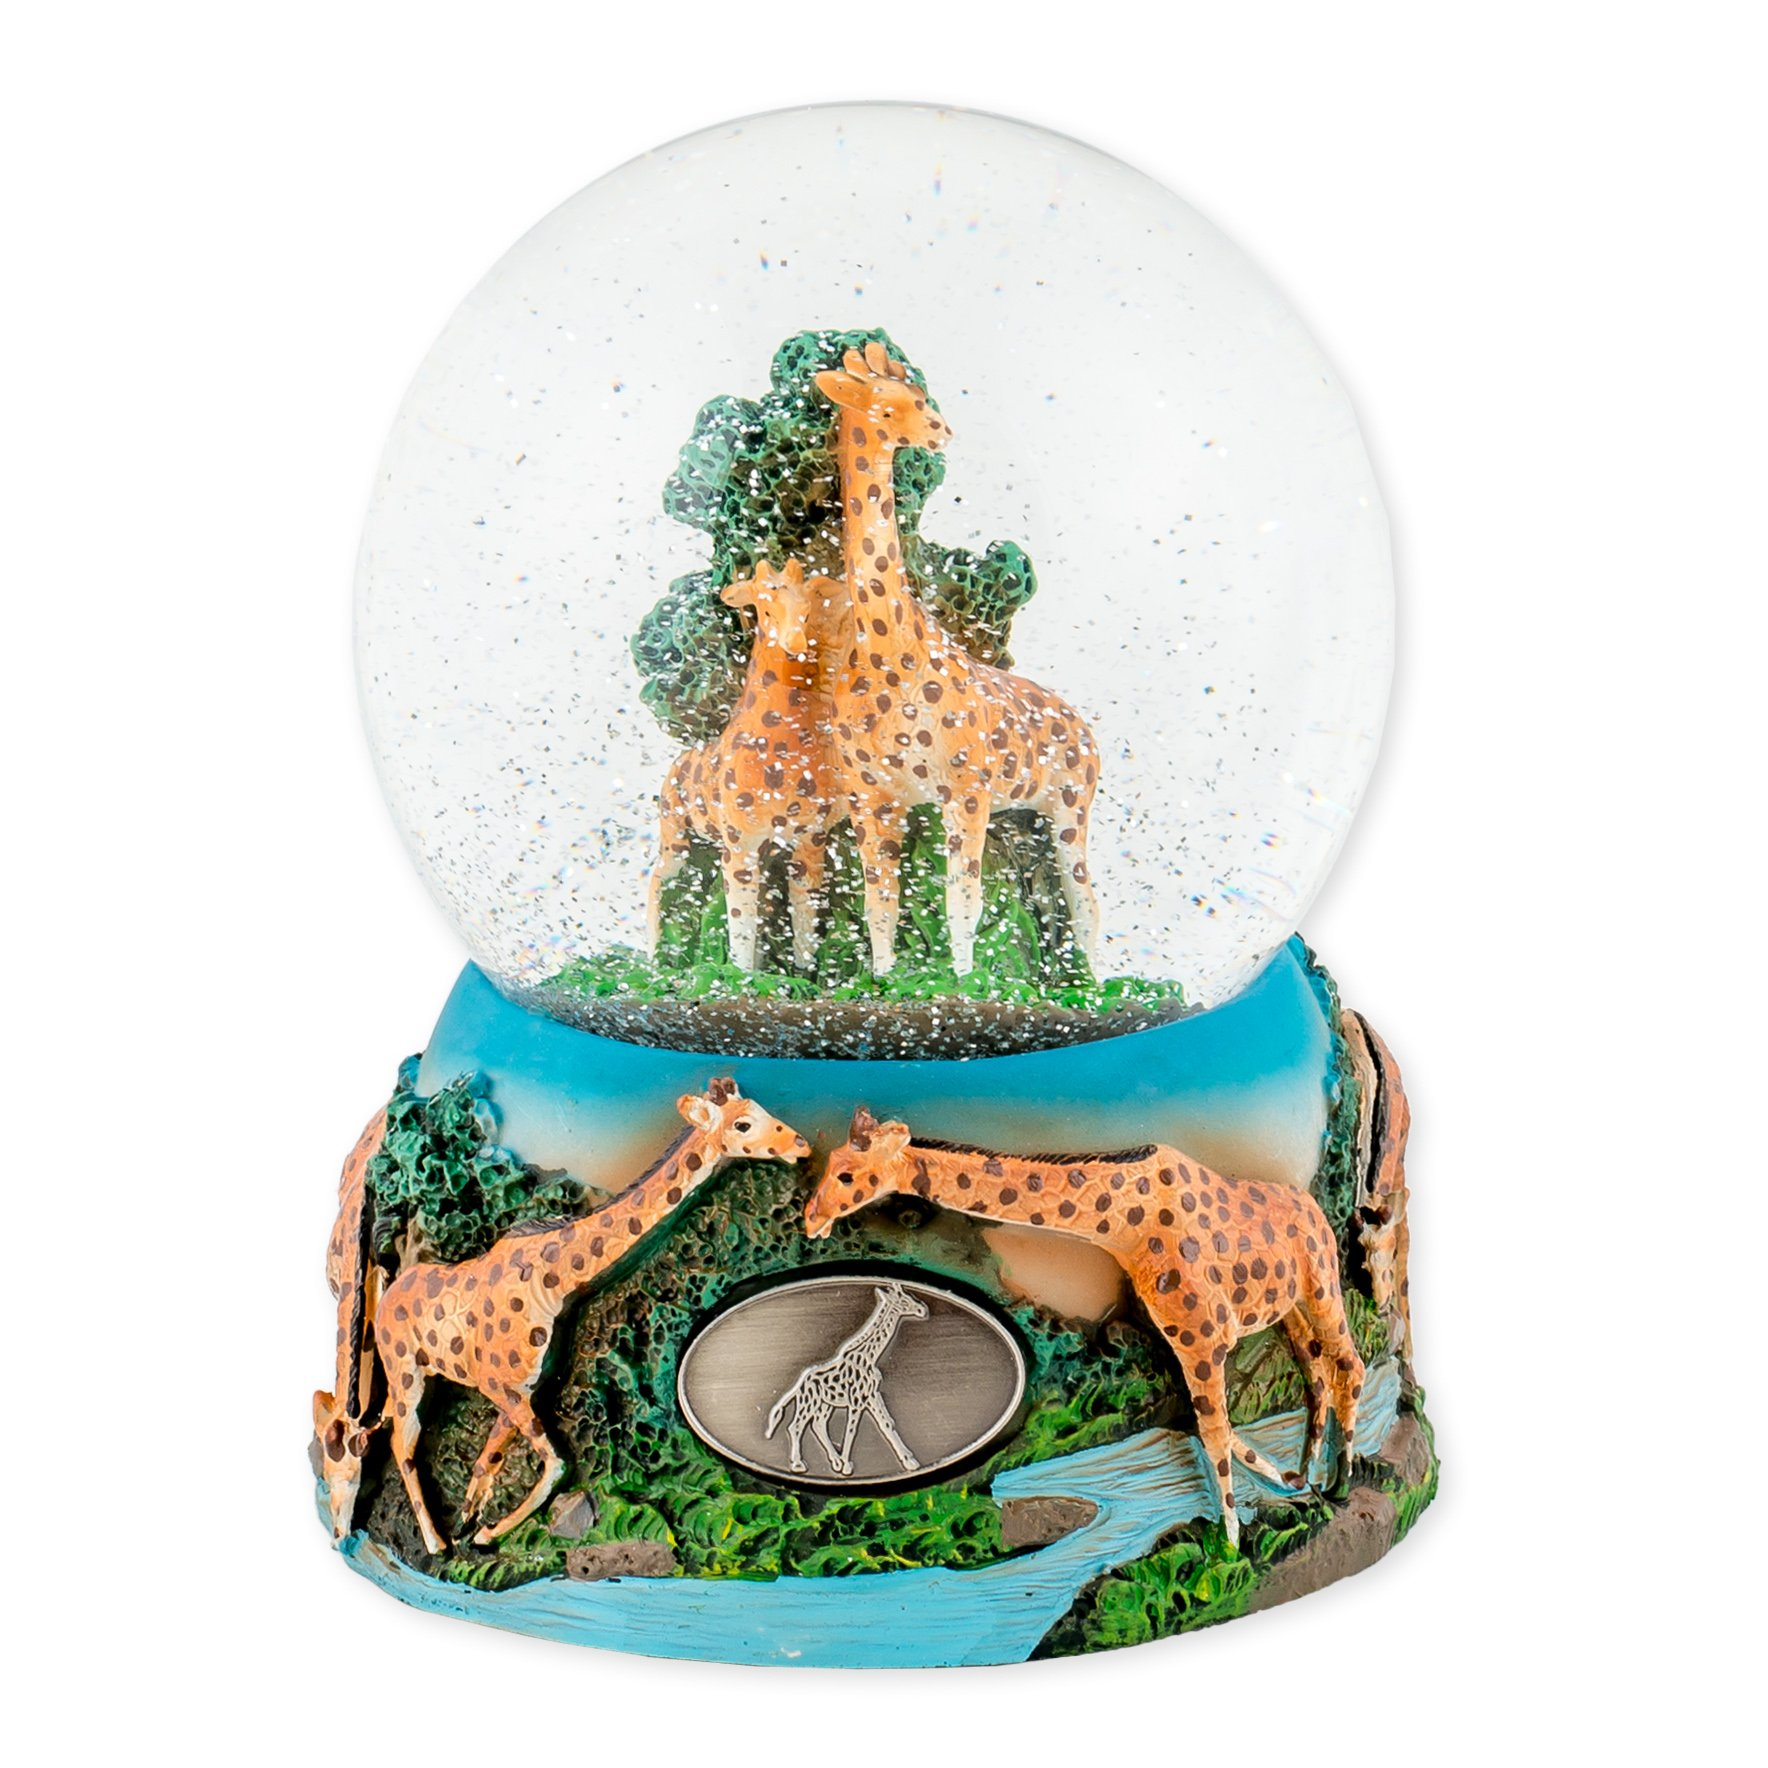 Wandering Giraffes 100mm Resin Glitter Water Globe Plays Tune Let Me Call You Sweetheart